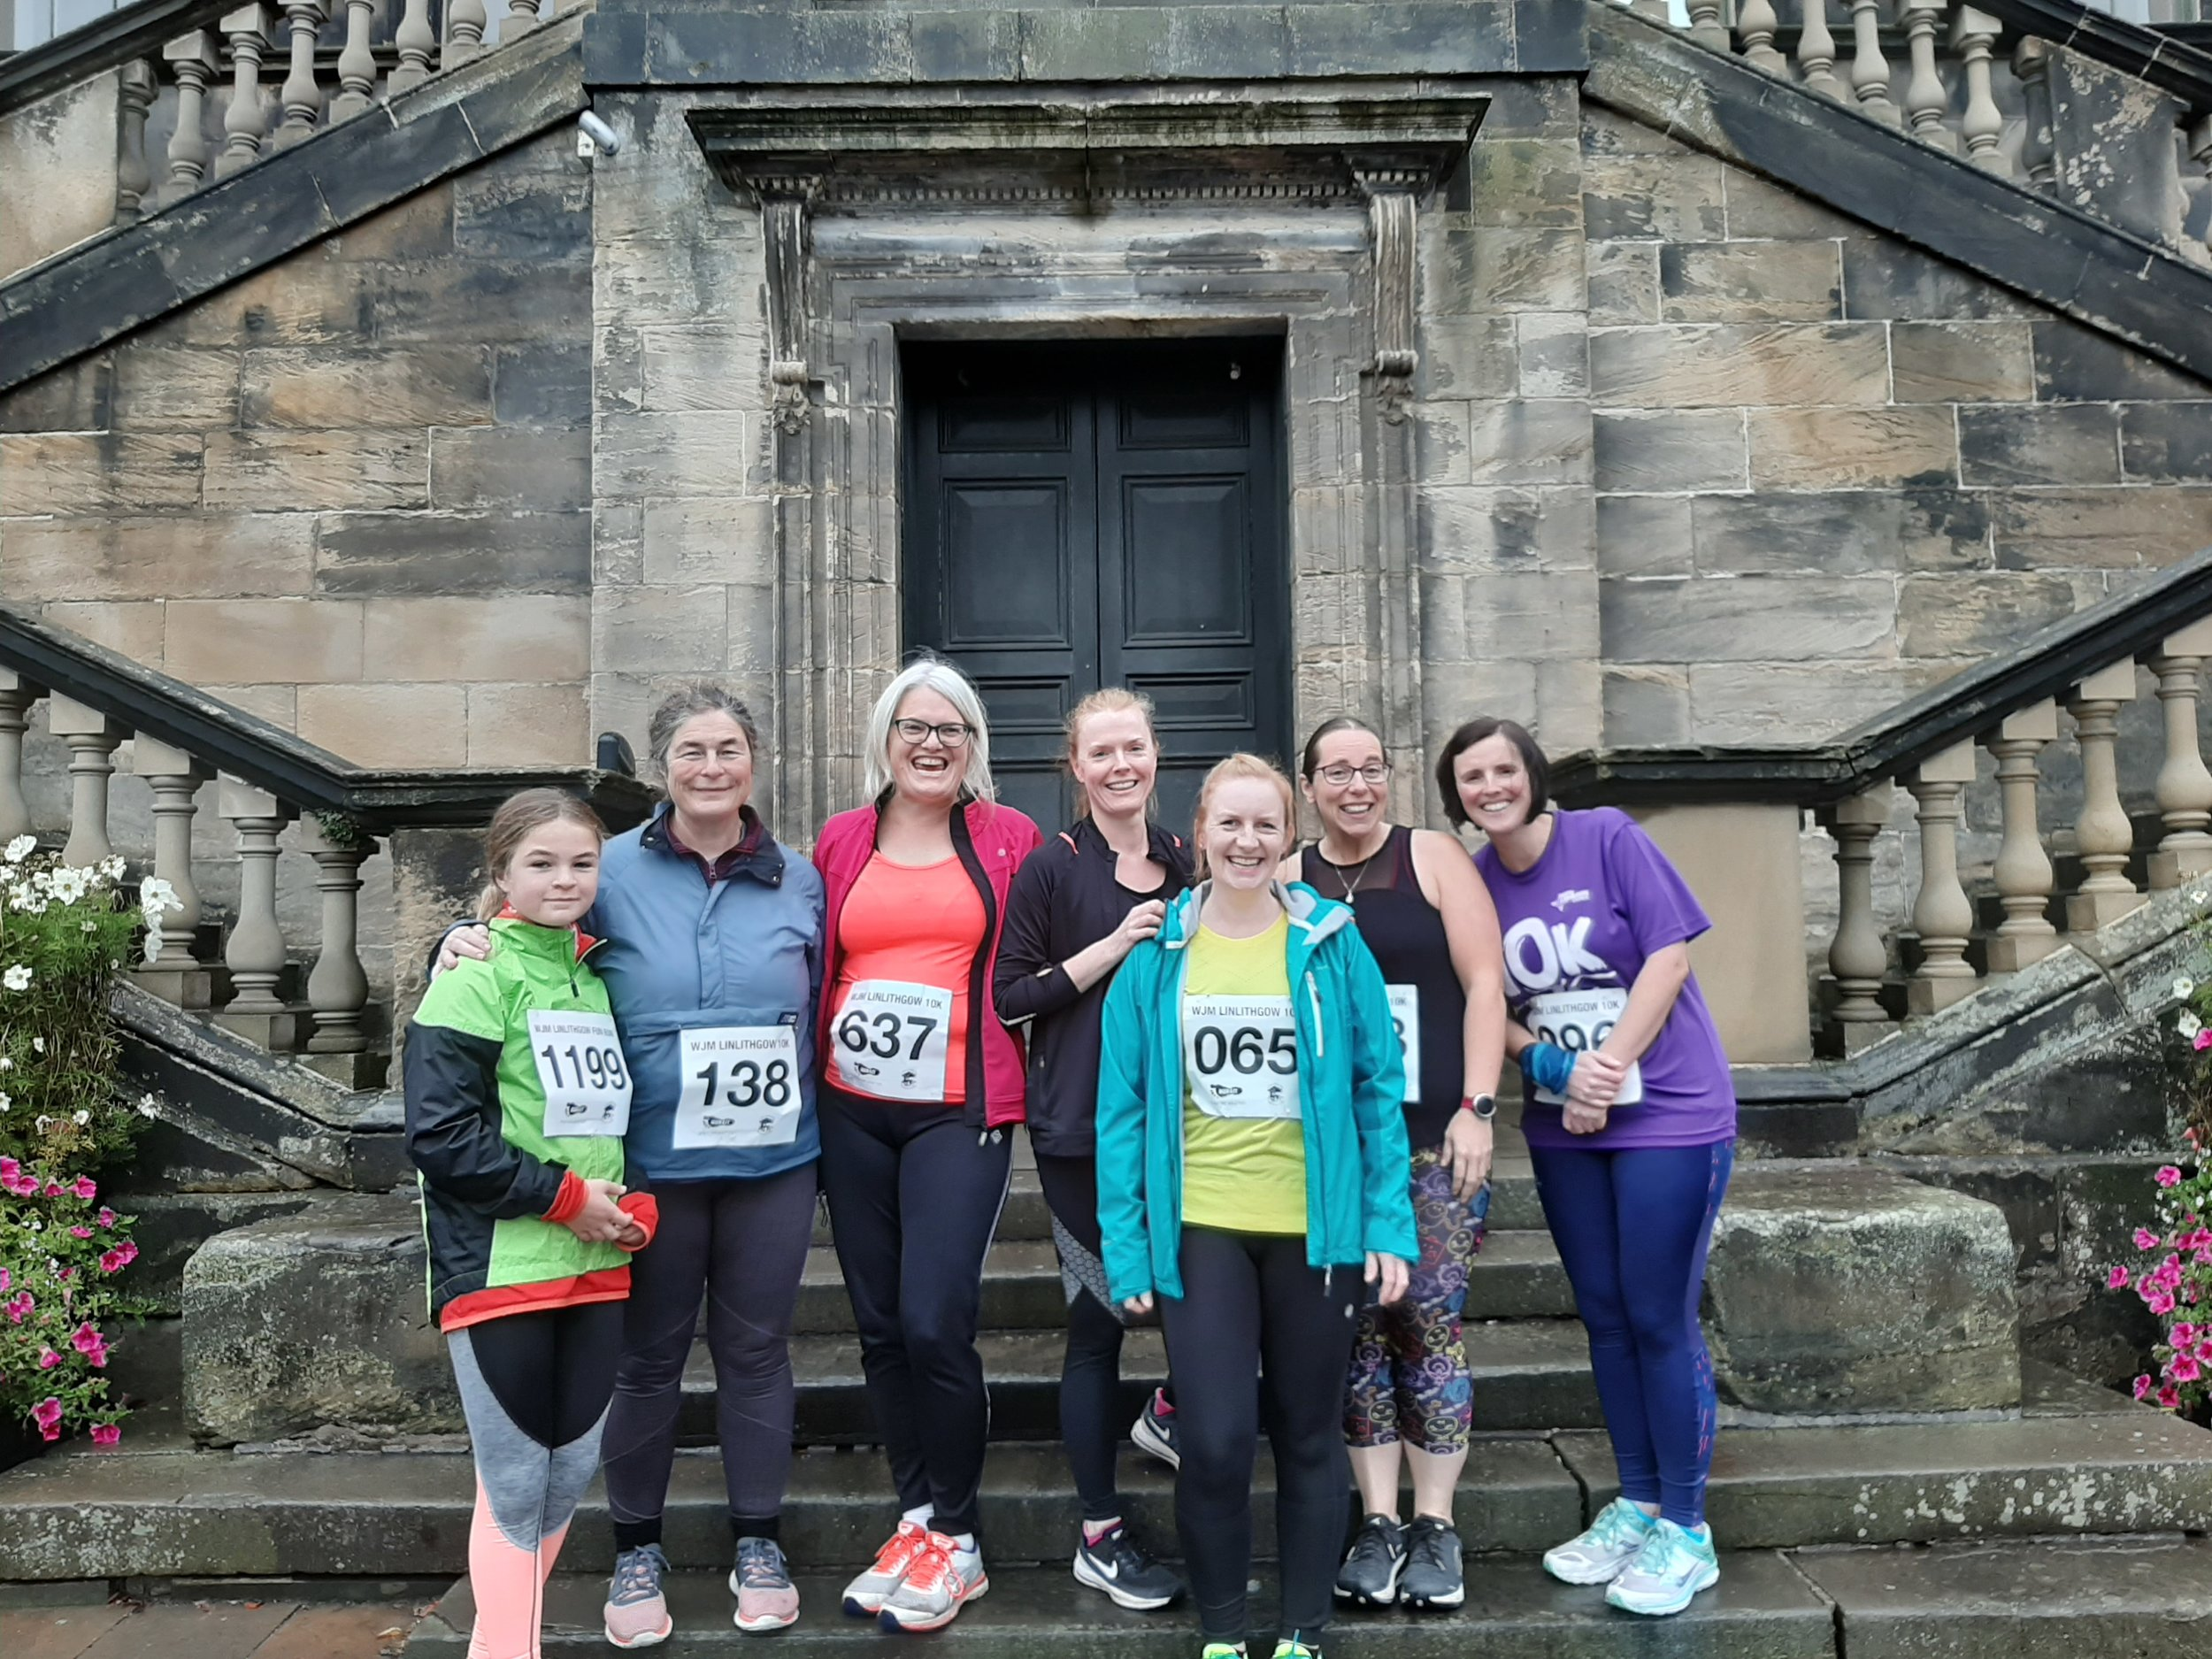 Let' Go Linlithgow group